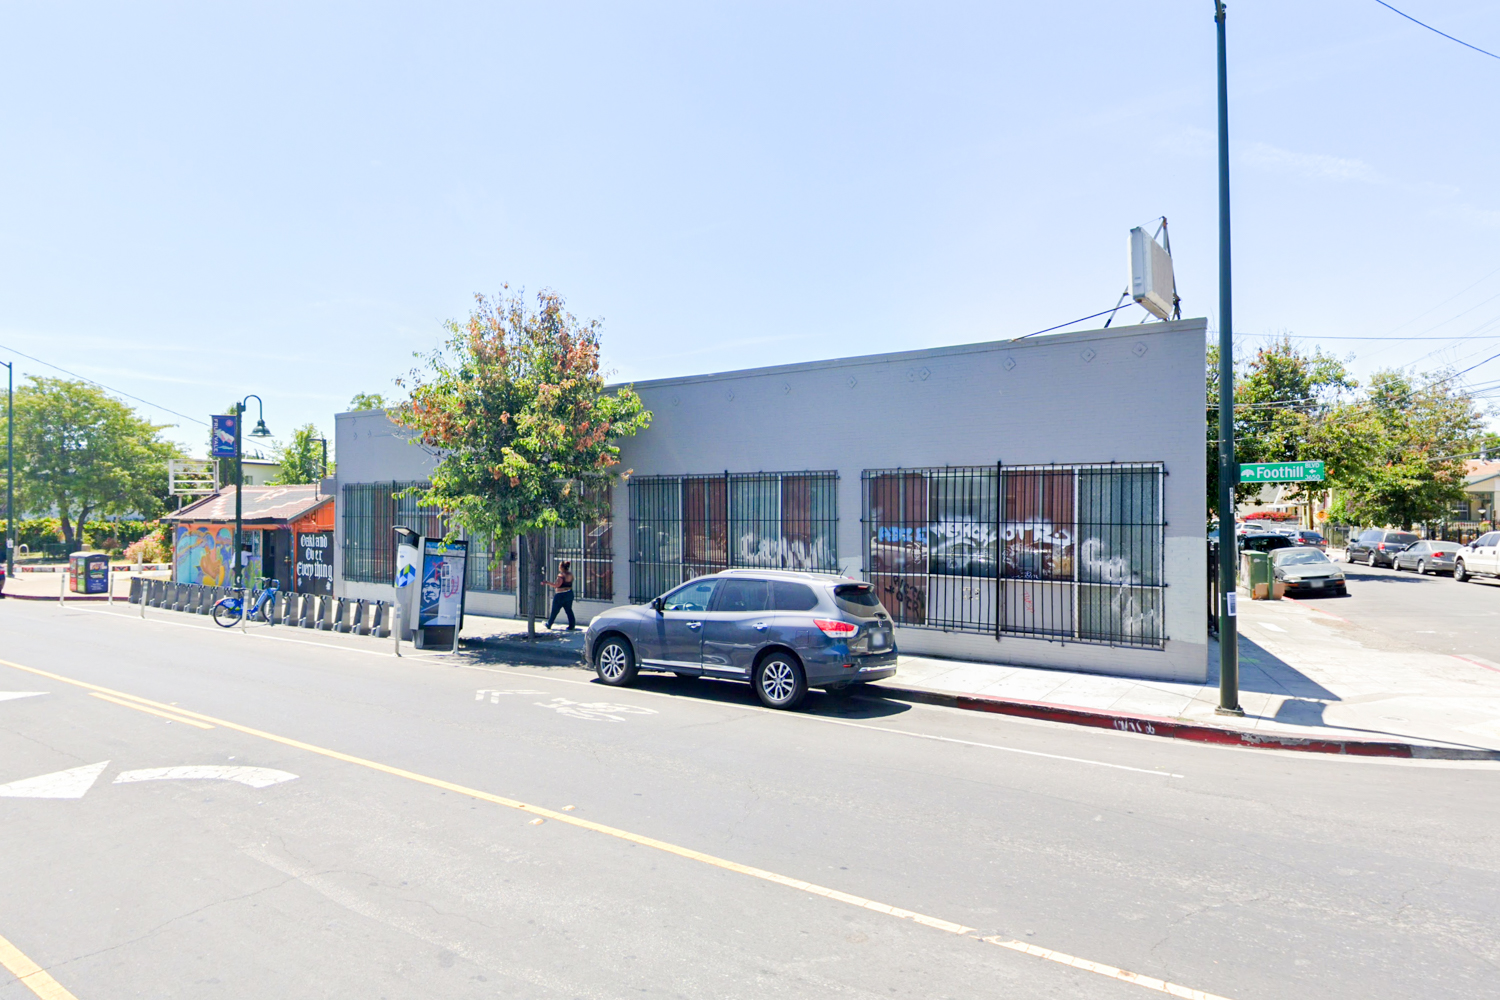 3651 Foothill Boulevard, via Google Street View